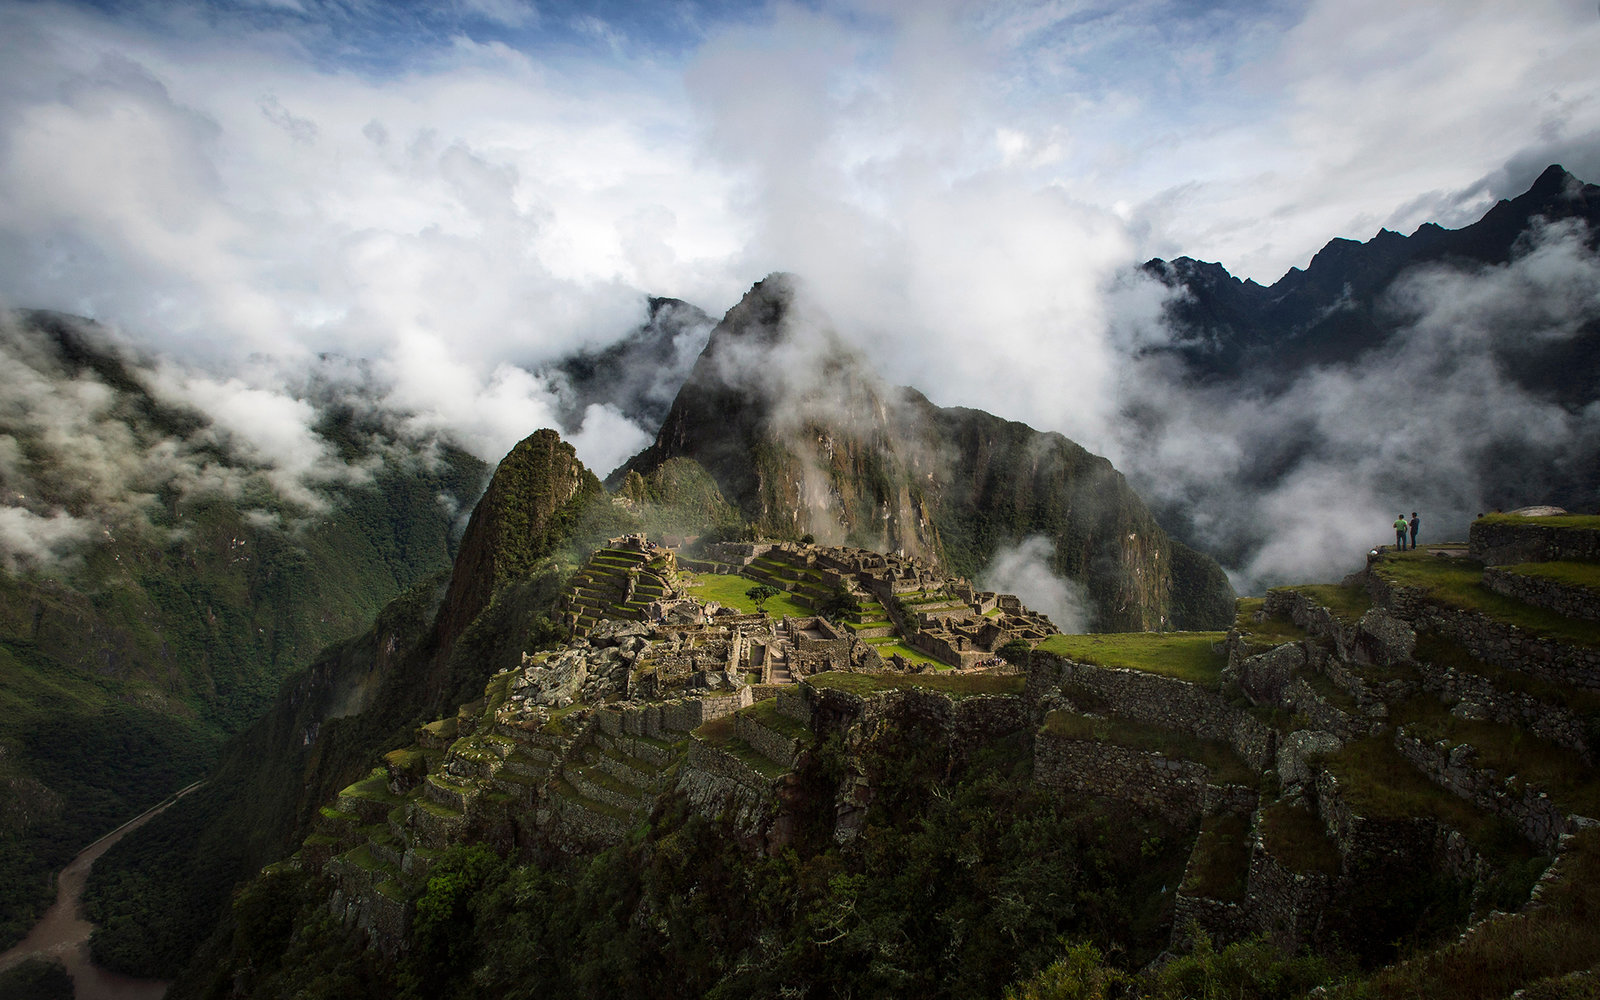 Death at Machu Picchu